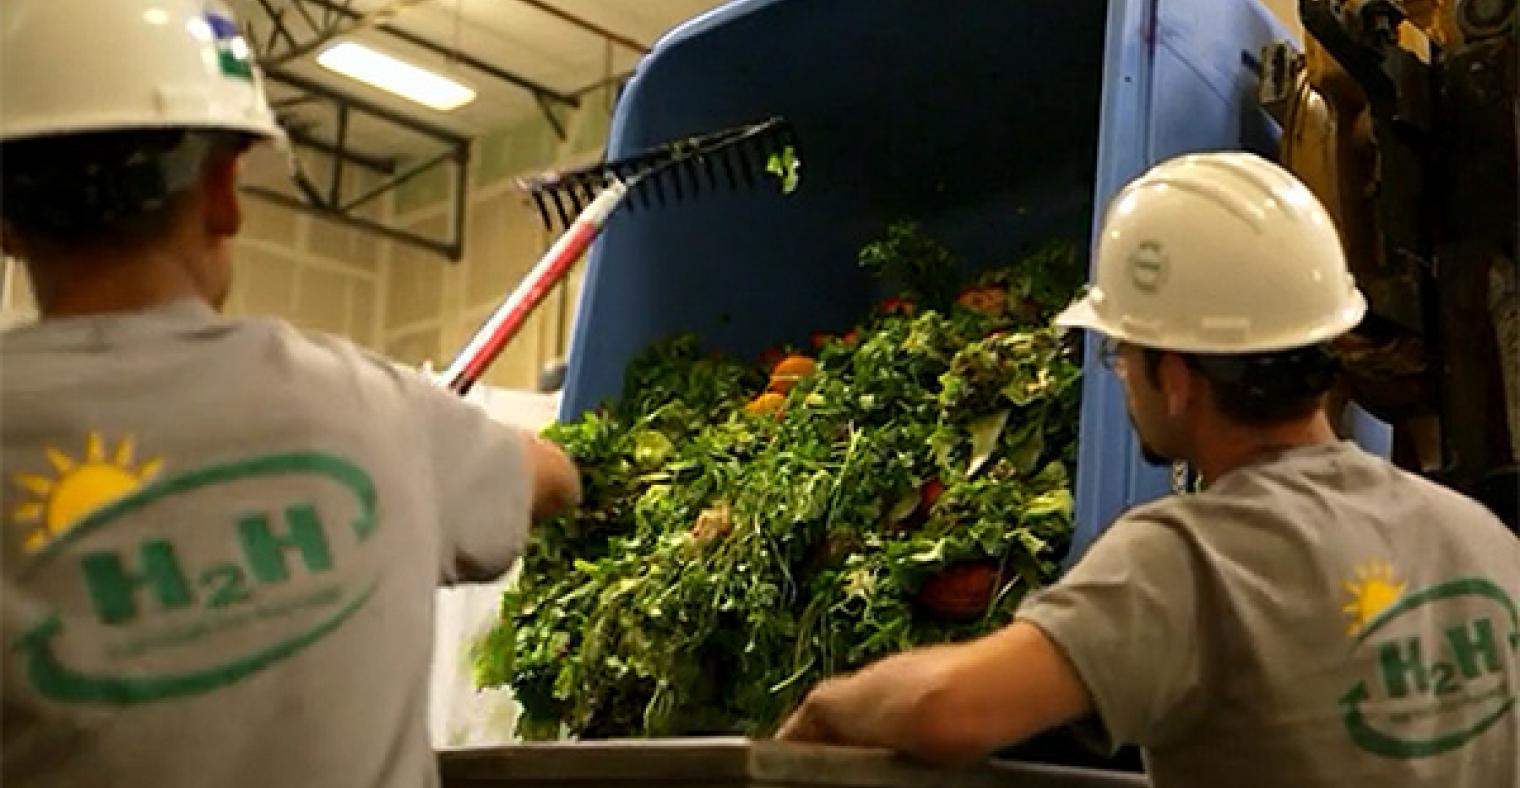 California Safe Soil team members working to create high-quality liquid fertilizer from waste.